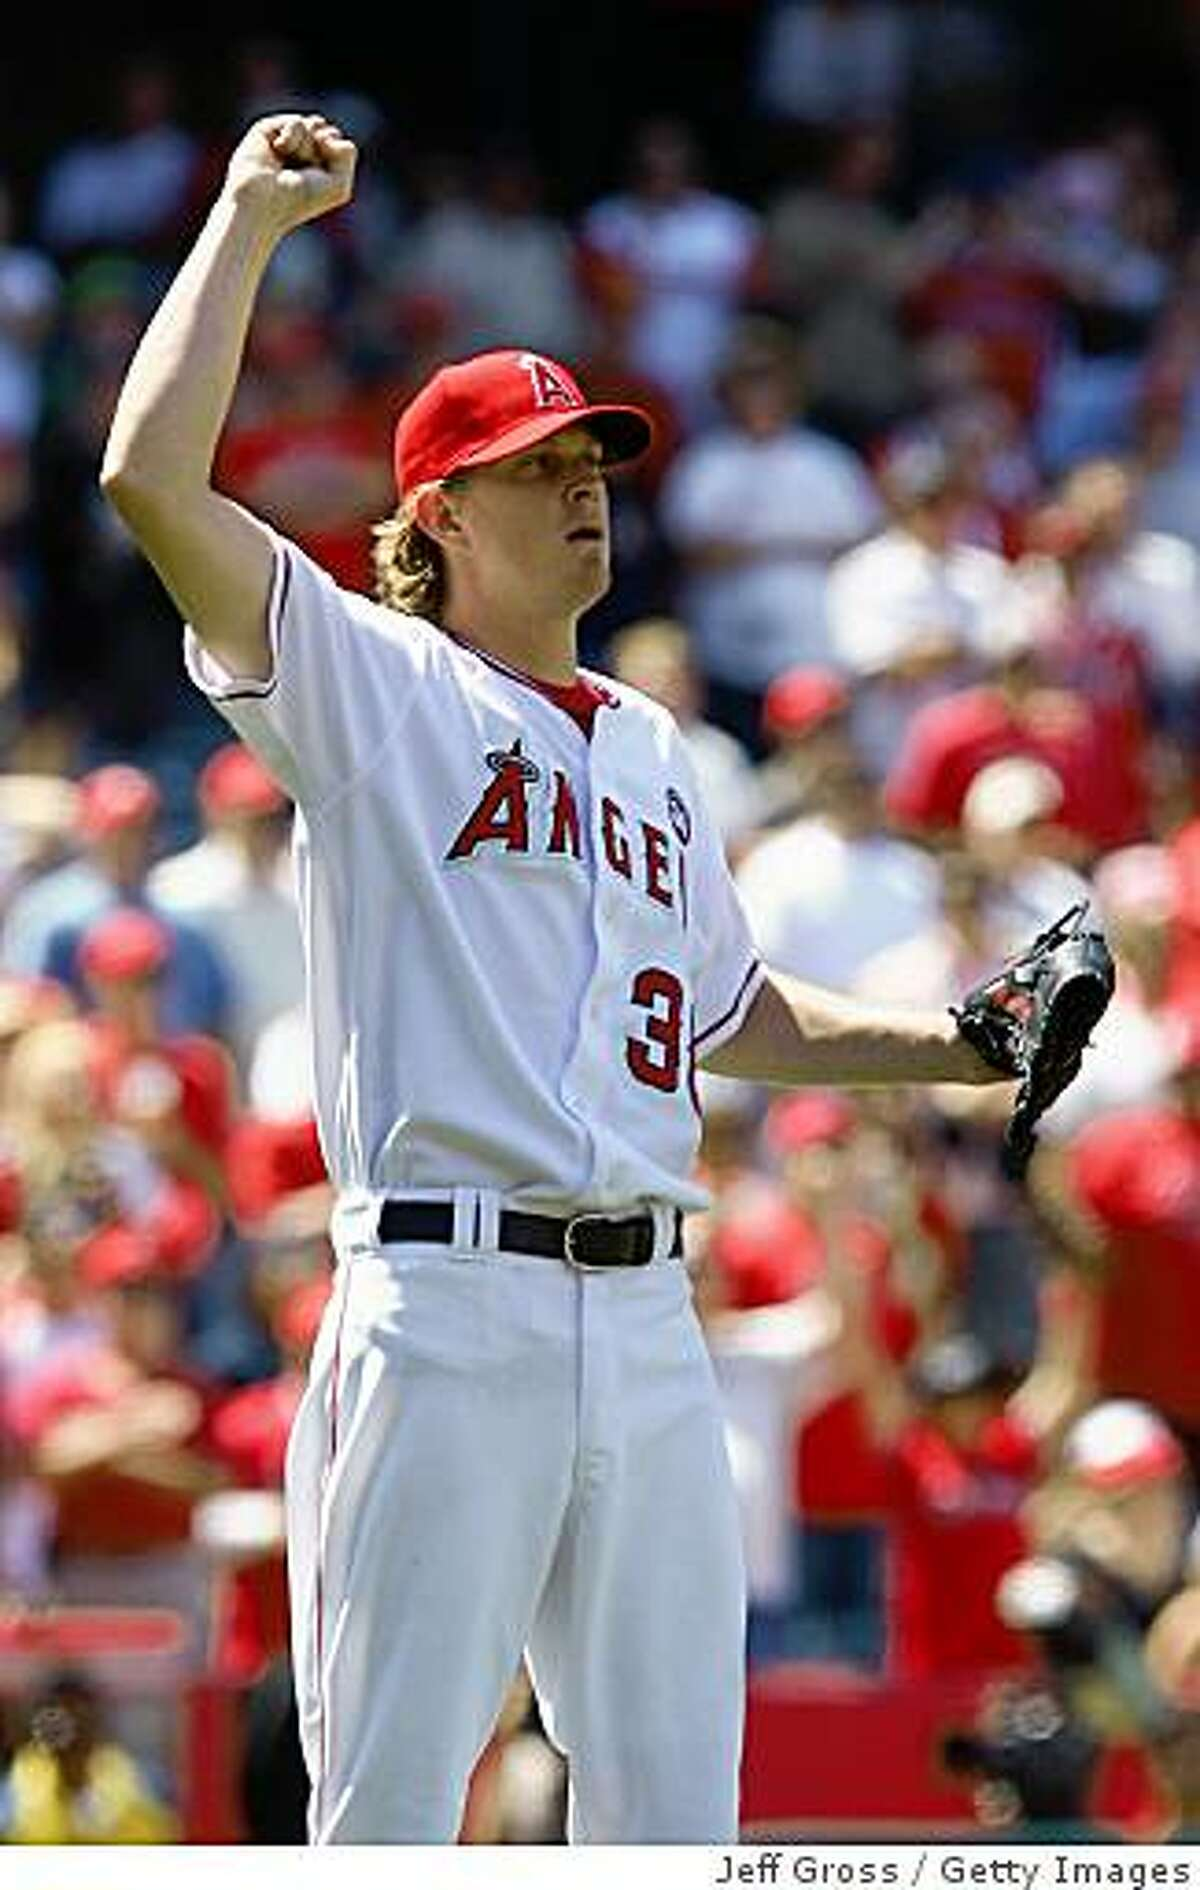 ANAHEIM, CA - JUNE 14: Pitcher Jered Weaver #36 of the Los Angeles Angels of Anaheim reacts after pitching a complete game shut-out against the San Diego Padres at Angel Stadium on June 14, 2009 in Anaheim, California. The Angels defeated the Padres 6-0. (Photo by Jeff Gross/Getty Images)